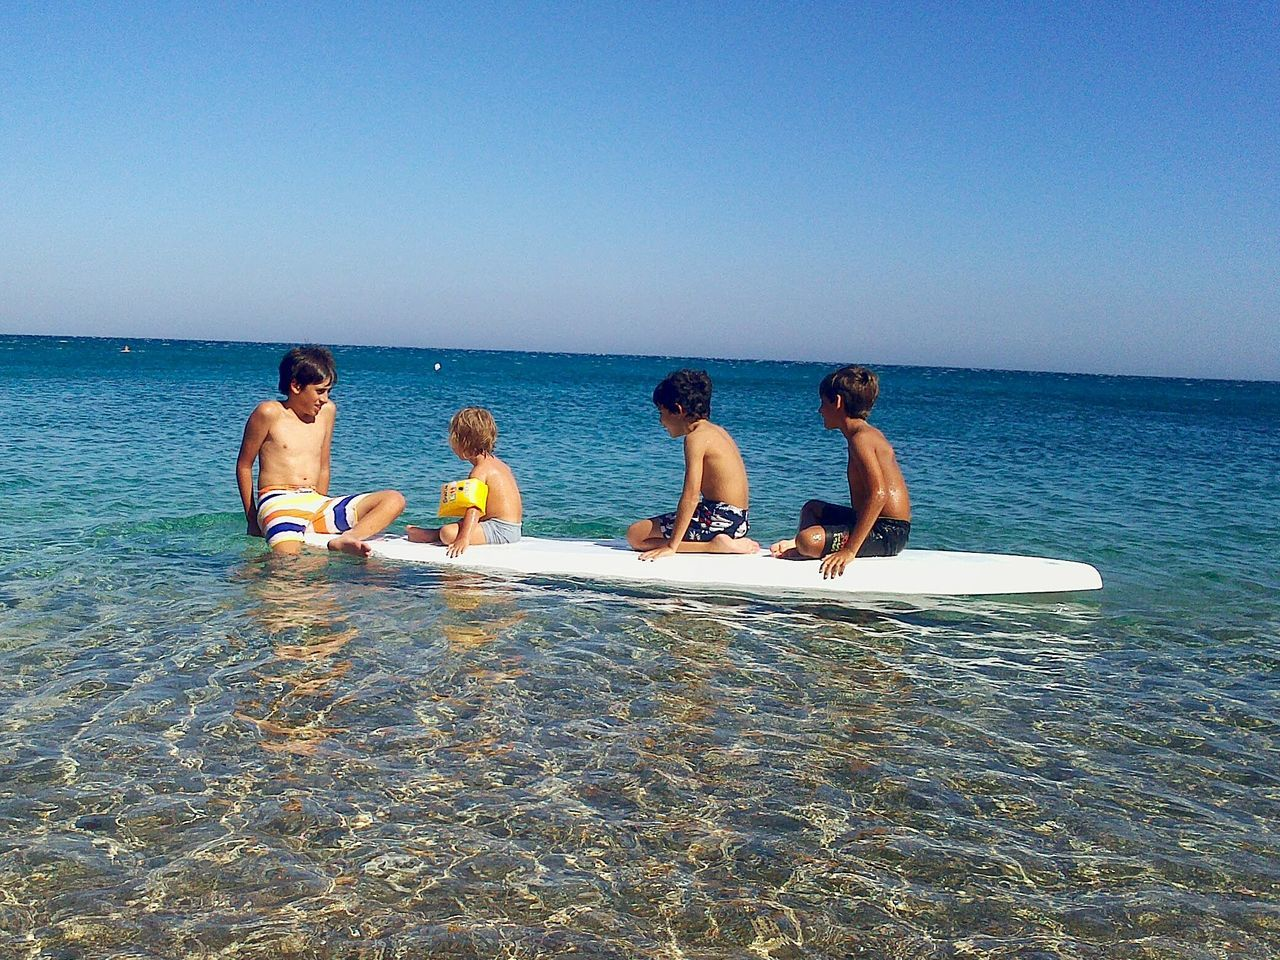 Relaxing till the next wave. Surf Surfing Children Kids Fun Boys Funtime Karpathos Greece Dodecanese Travel Sea Sports